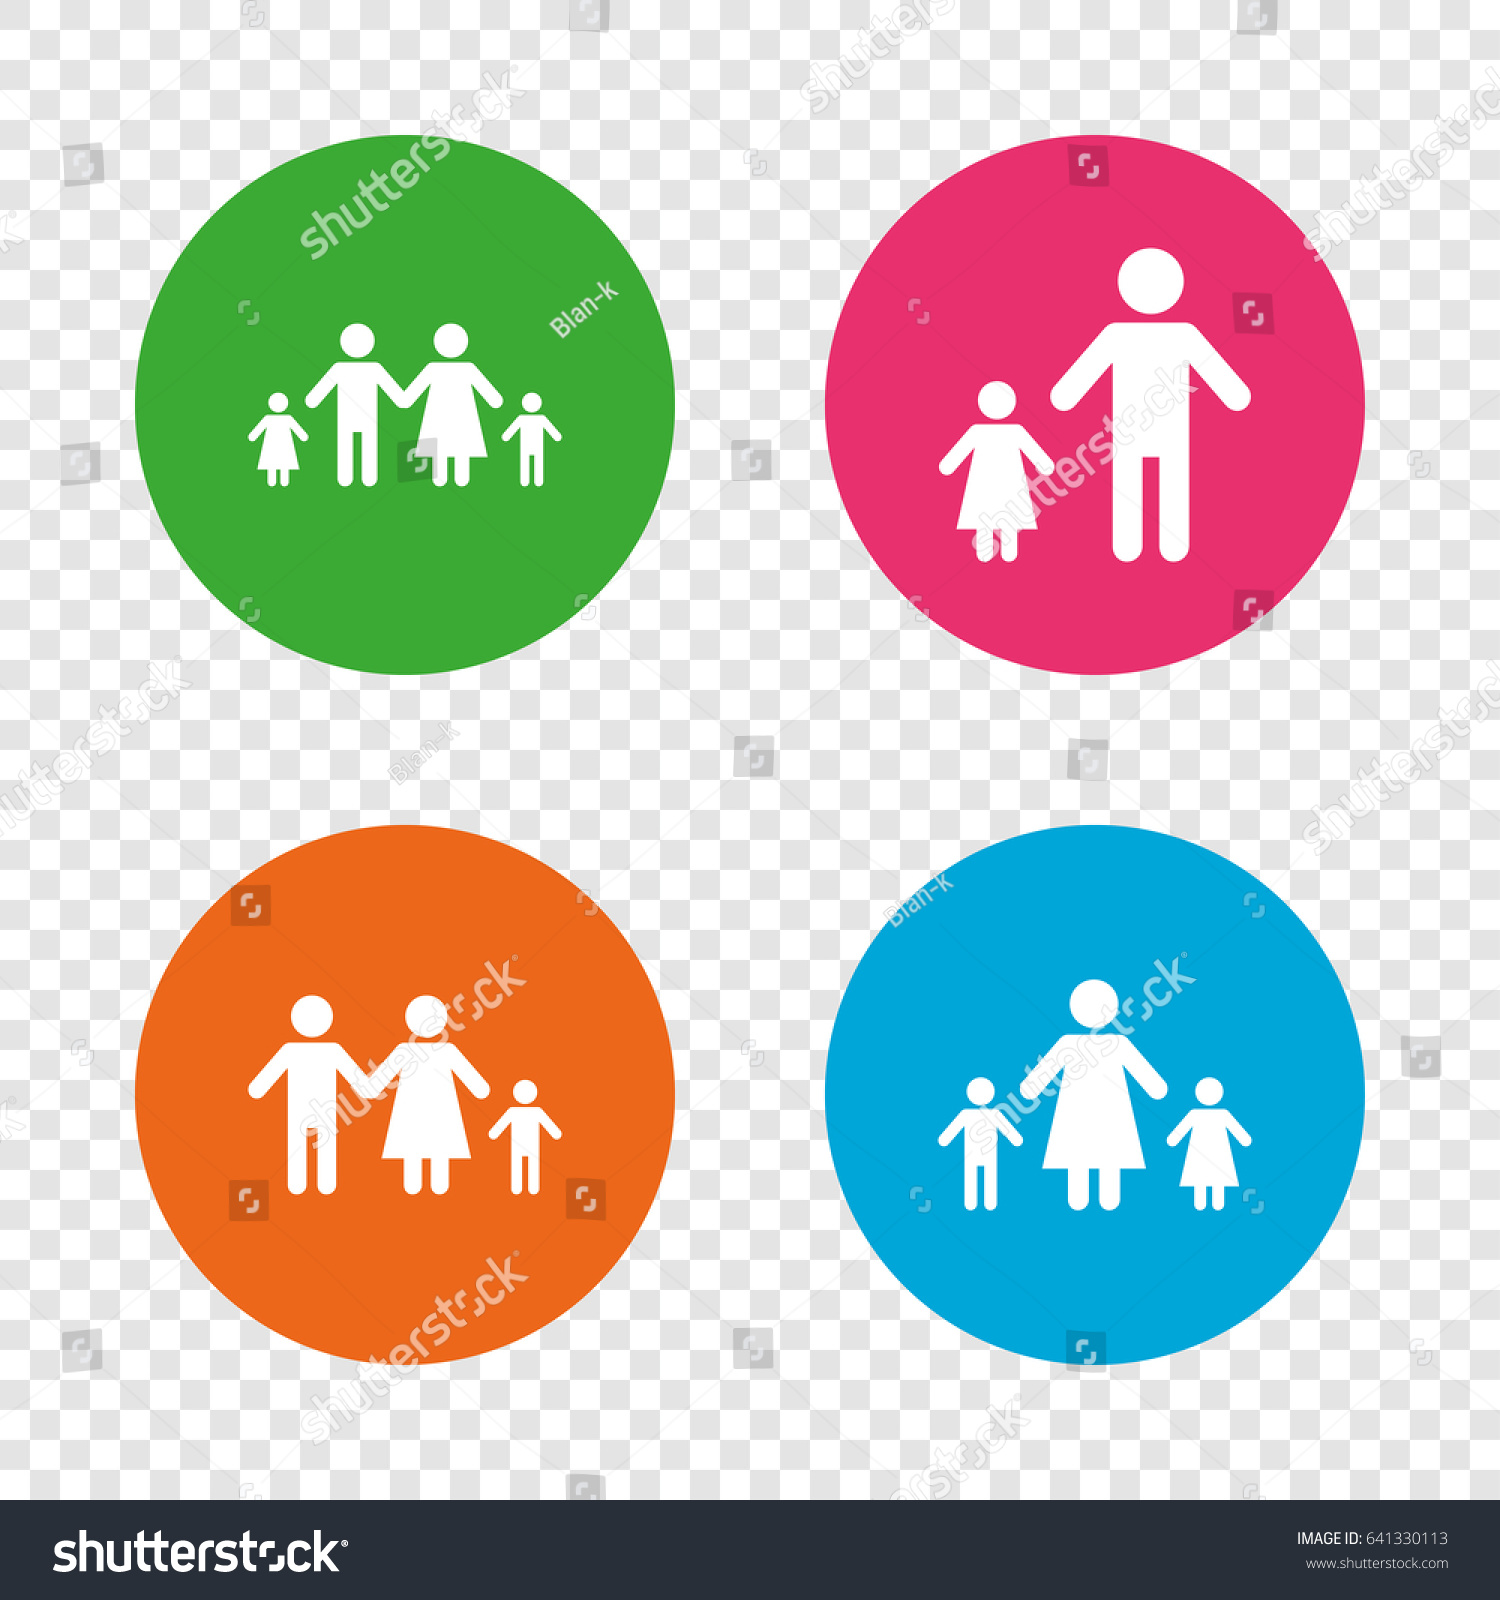 Family two children icon parents kids stock vector 641330113 family with two children icon parents and kids symbols one parent family signs buycottarizona